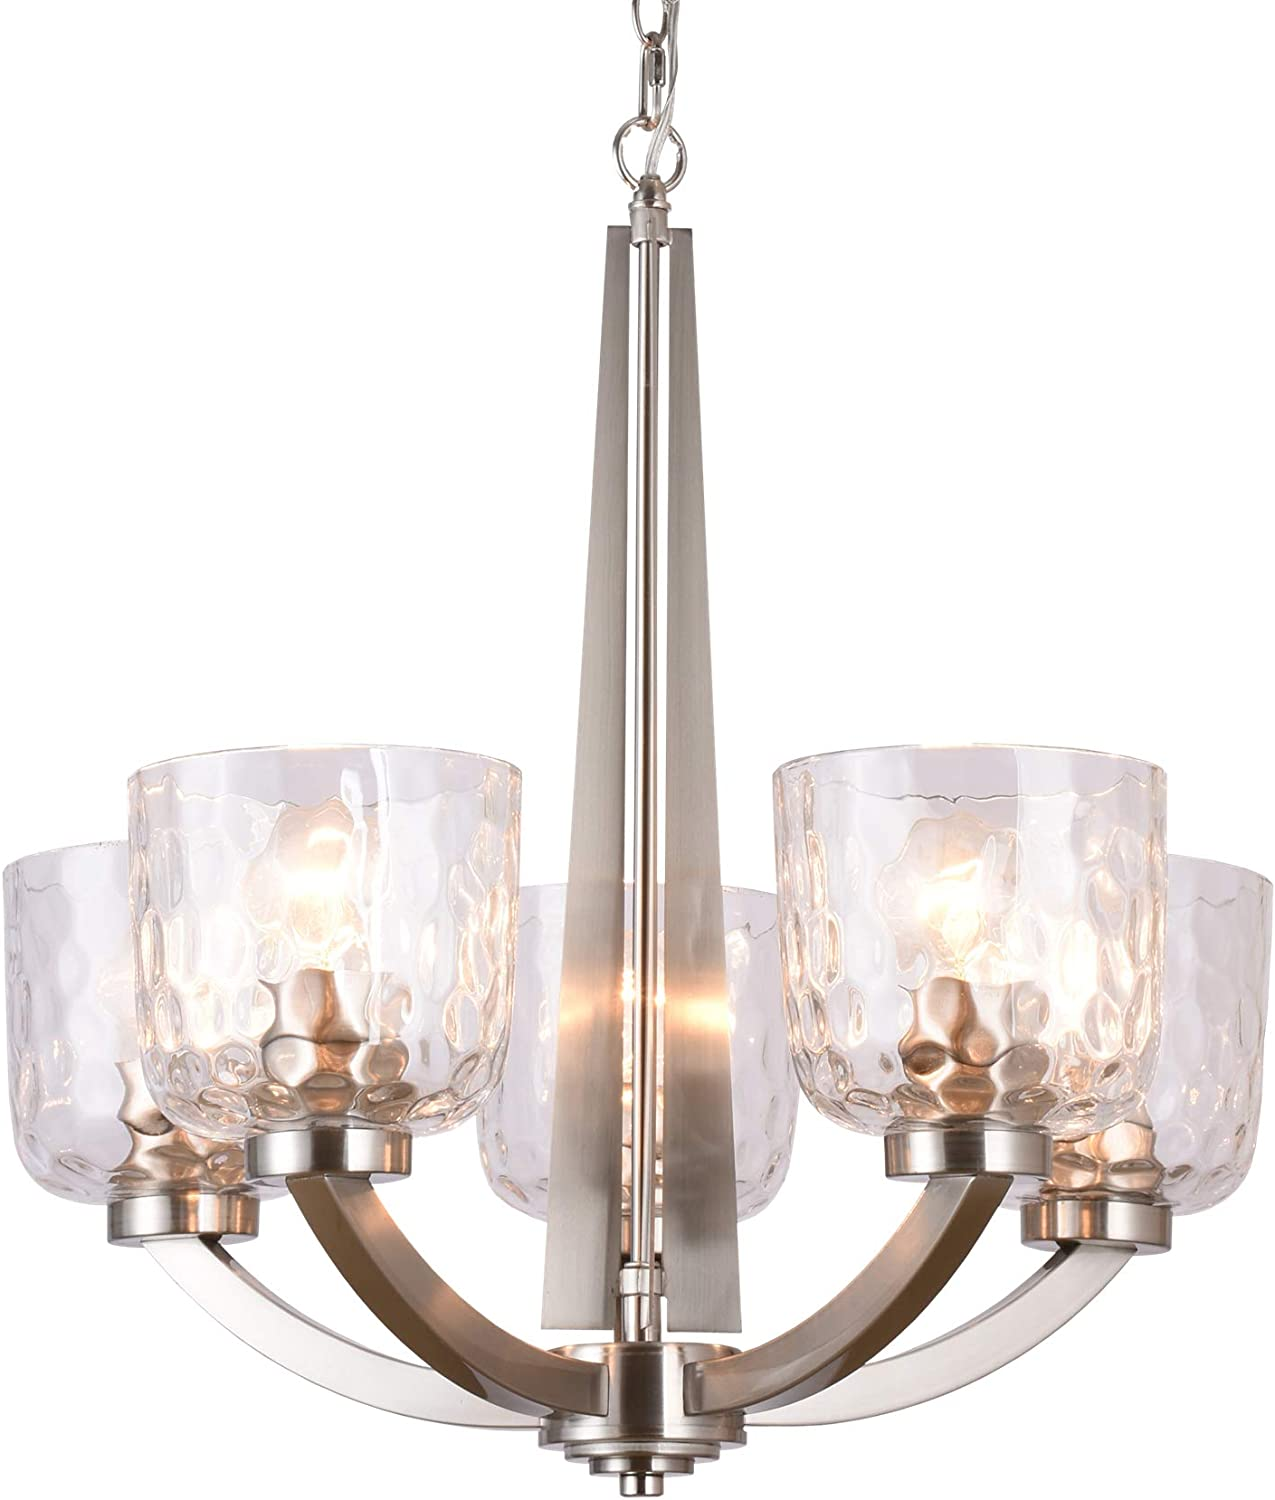 Alice House 22 5-Light E26 Large Chandelier Brushed Nickel Modern Style Hammered Glass Traditional Hanging Pendant Lighting Fixture for Living Room, Dining Room, Kitchen, Bedroom AL6091-H5